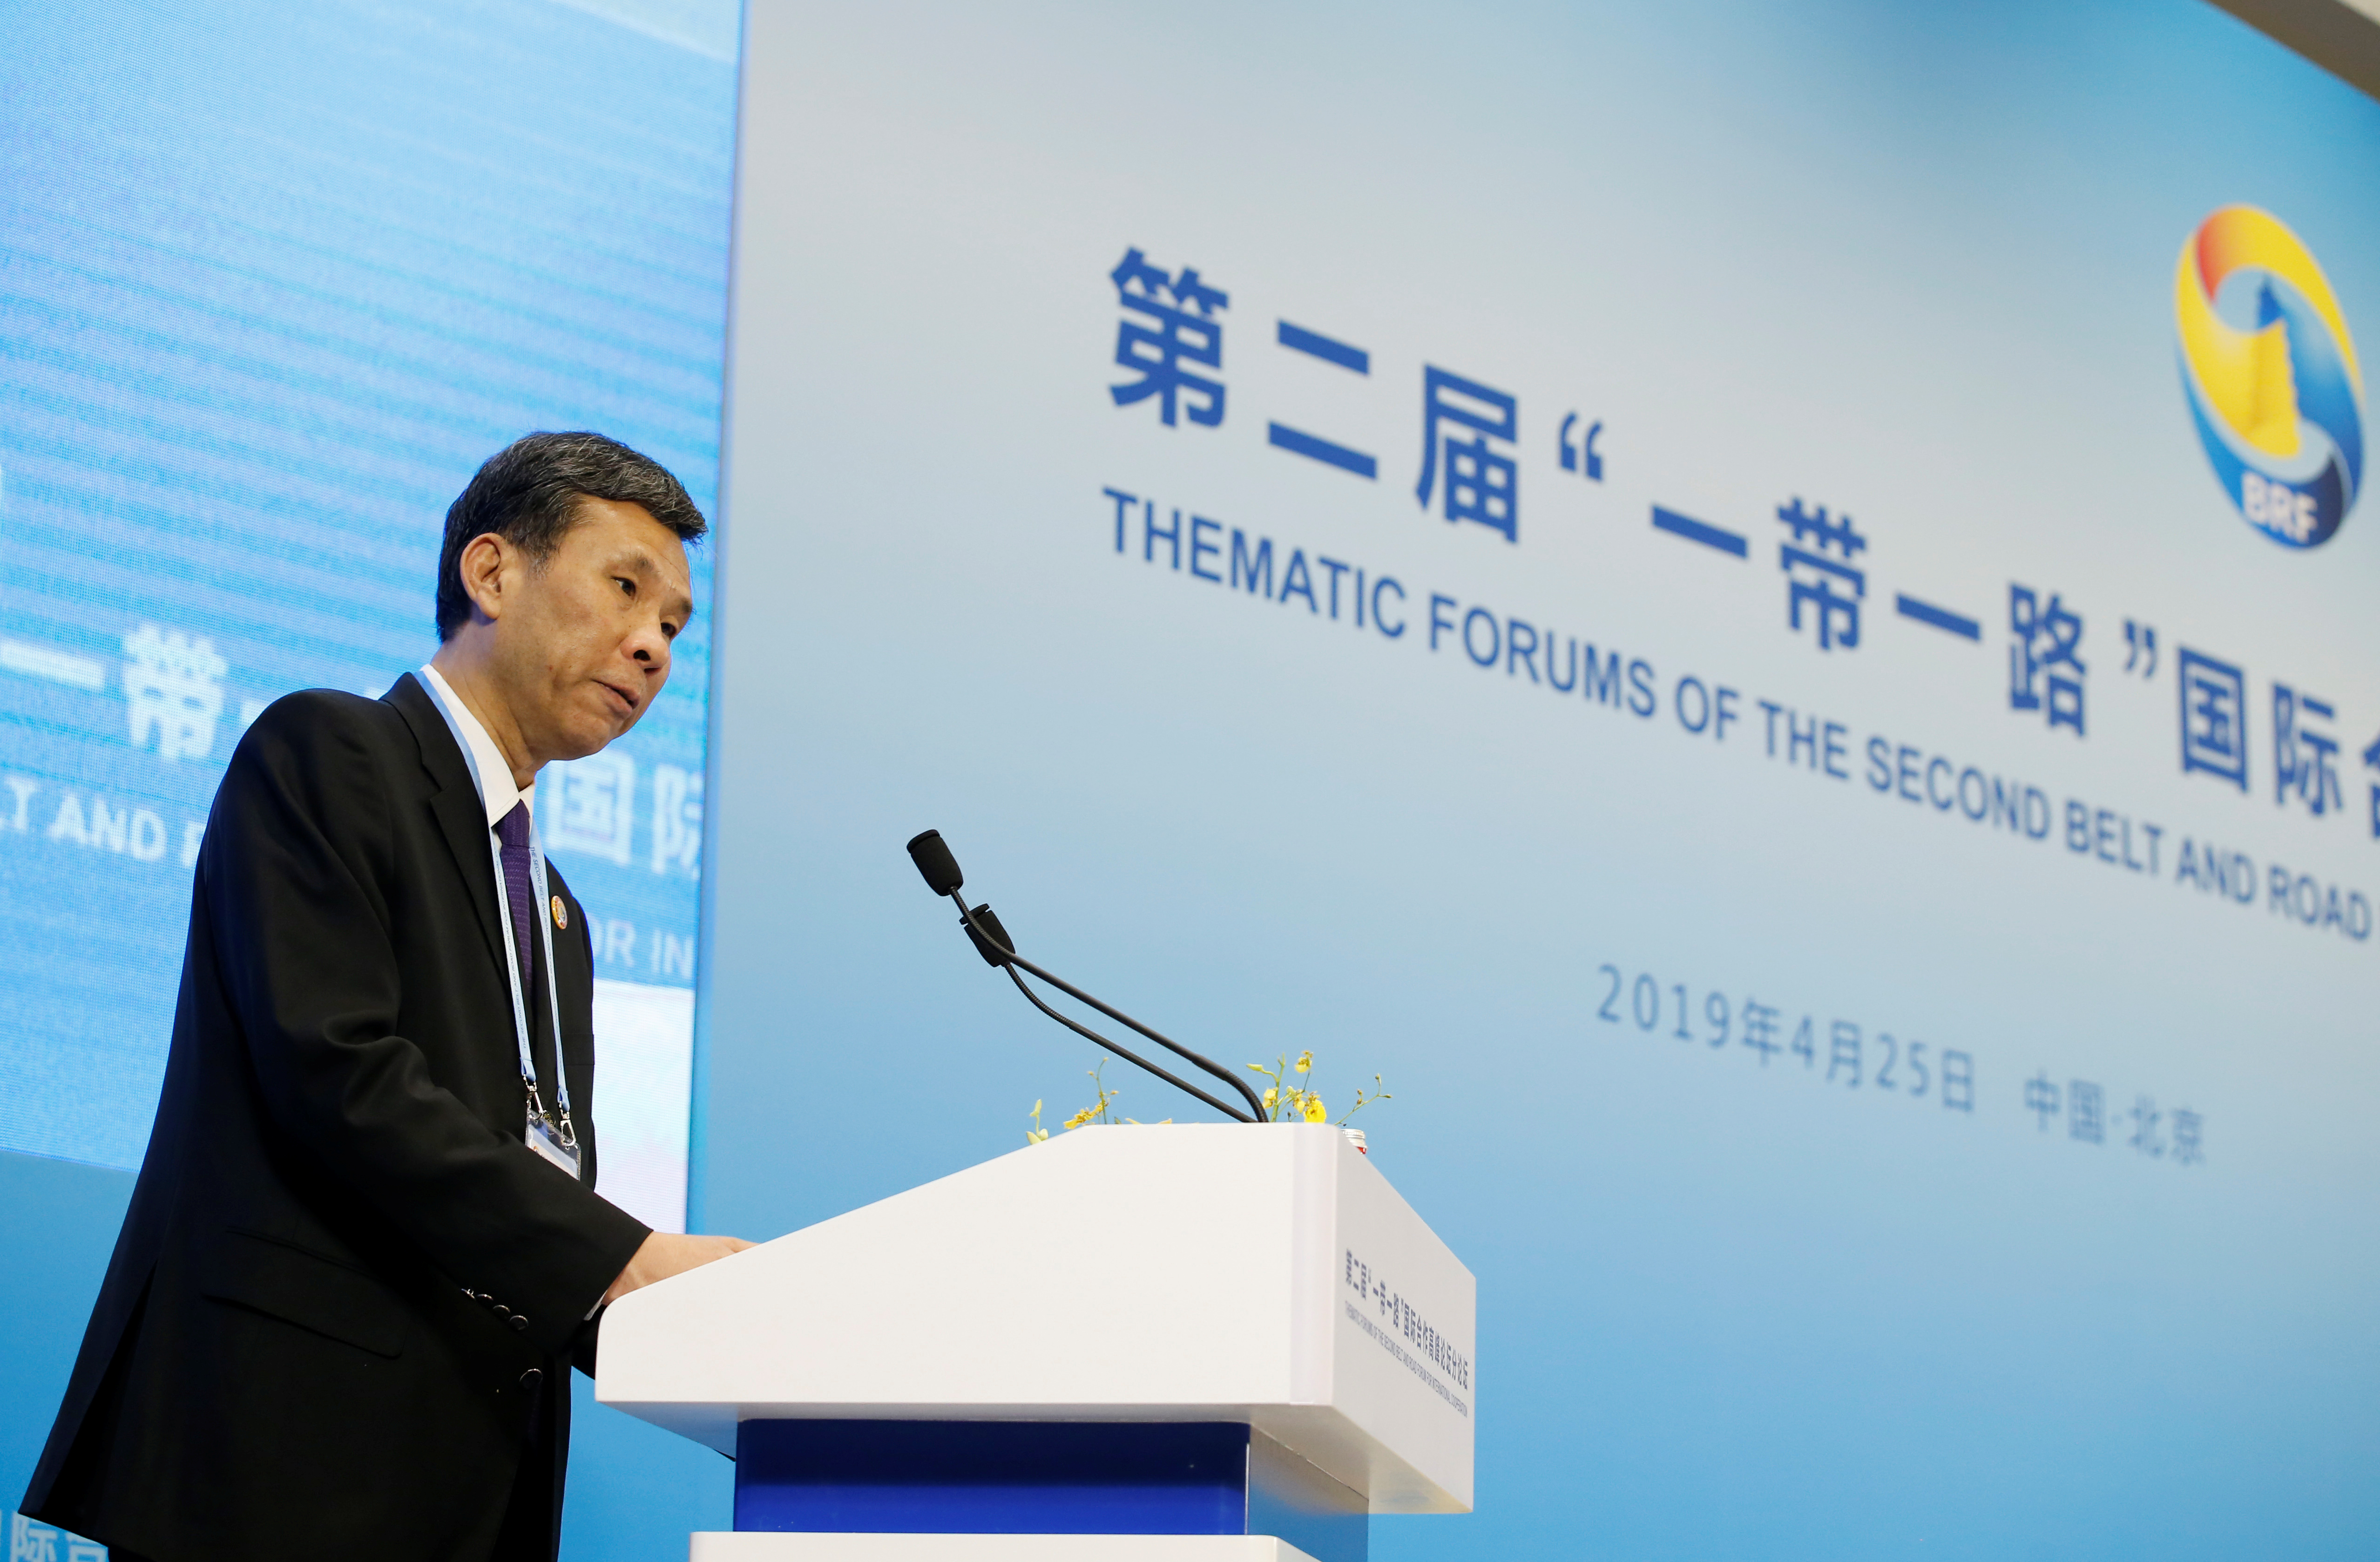 Chinese Finance Minister Liu Kun attends a thematic forum of the second Belt and Road Forum for international cooperation in Beijing.